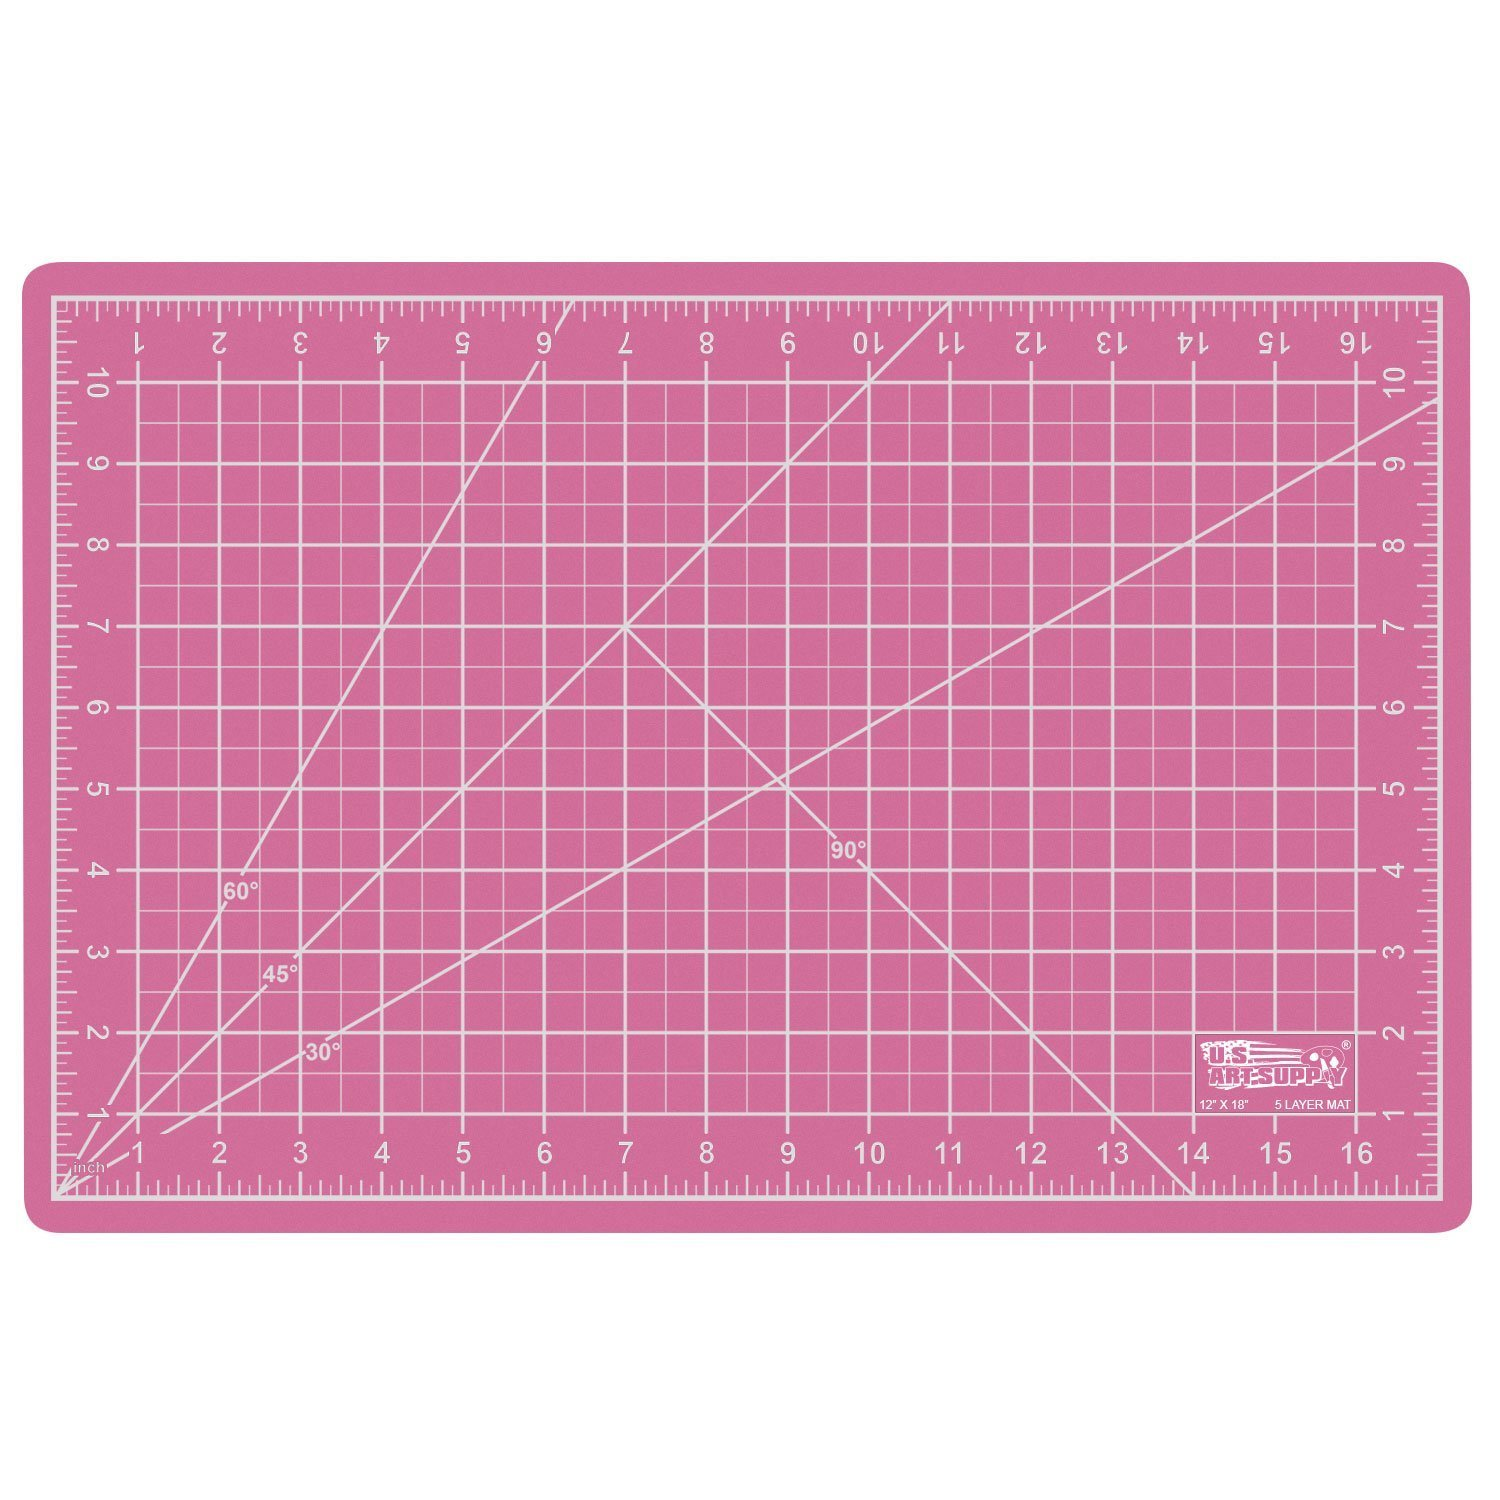 US Art Supply 12'' x 18'' PINK/BLUE Professional Self Healing 5-Ply Double Sided Durable Non-Slip PVC Cutting Mat Great for Scrapbooking, Quilting, Sewing and all Arts & Crafts Projects